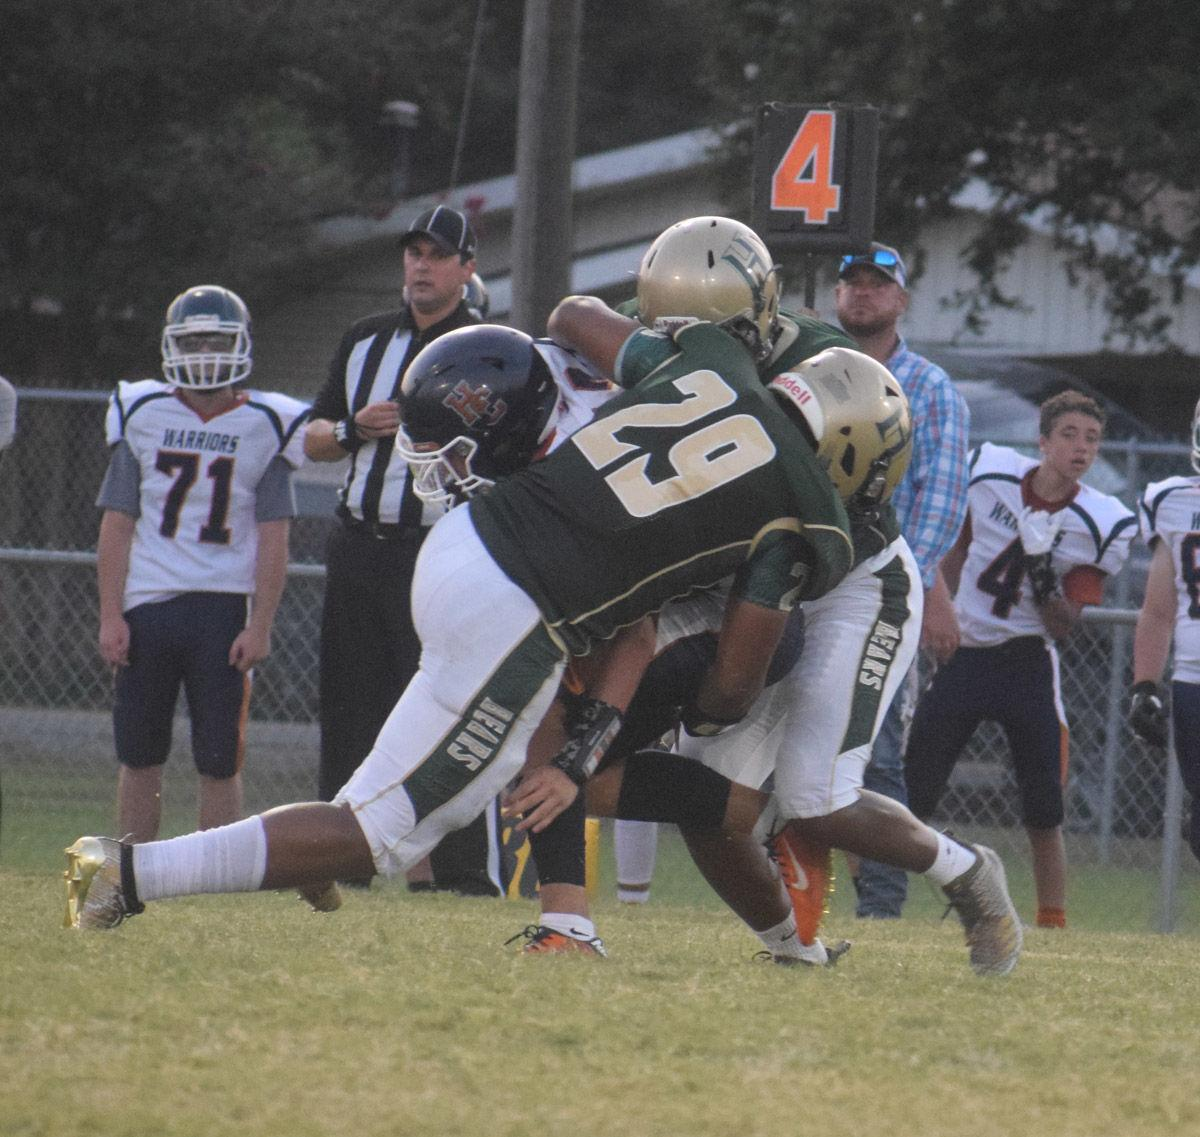 CHS, Franklin, Westgate fall in Friday football action